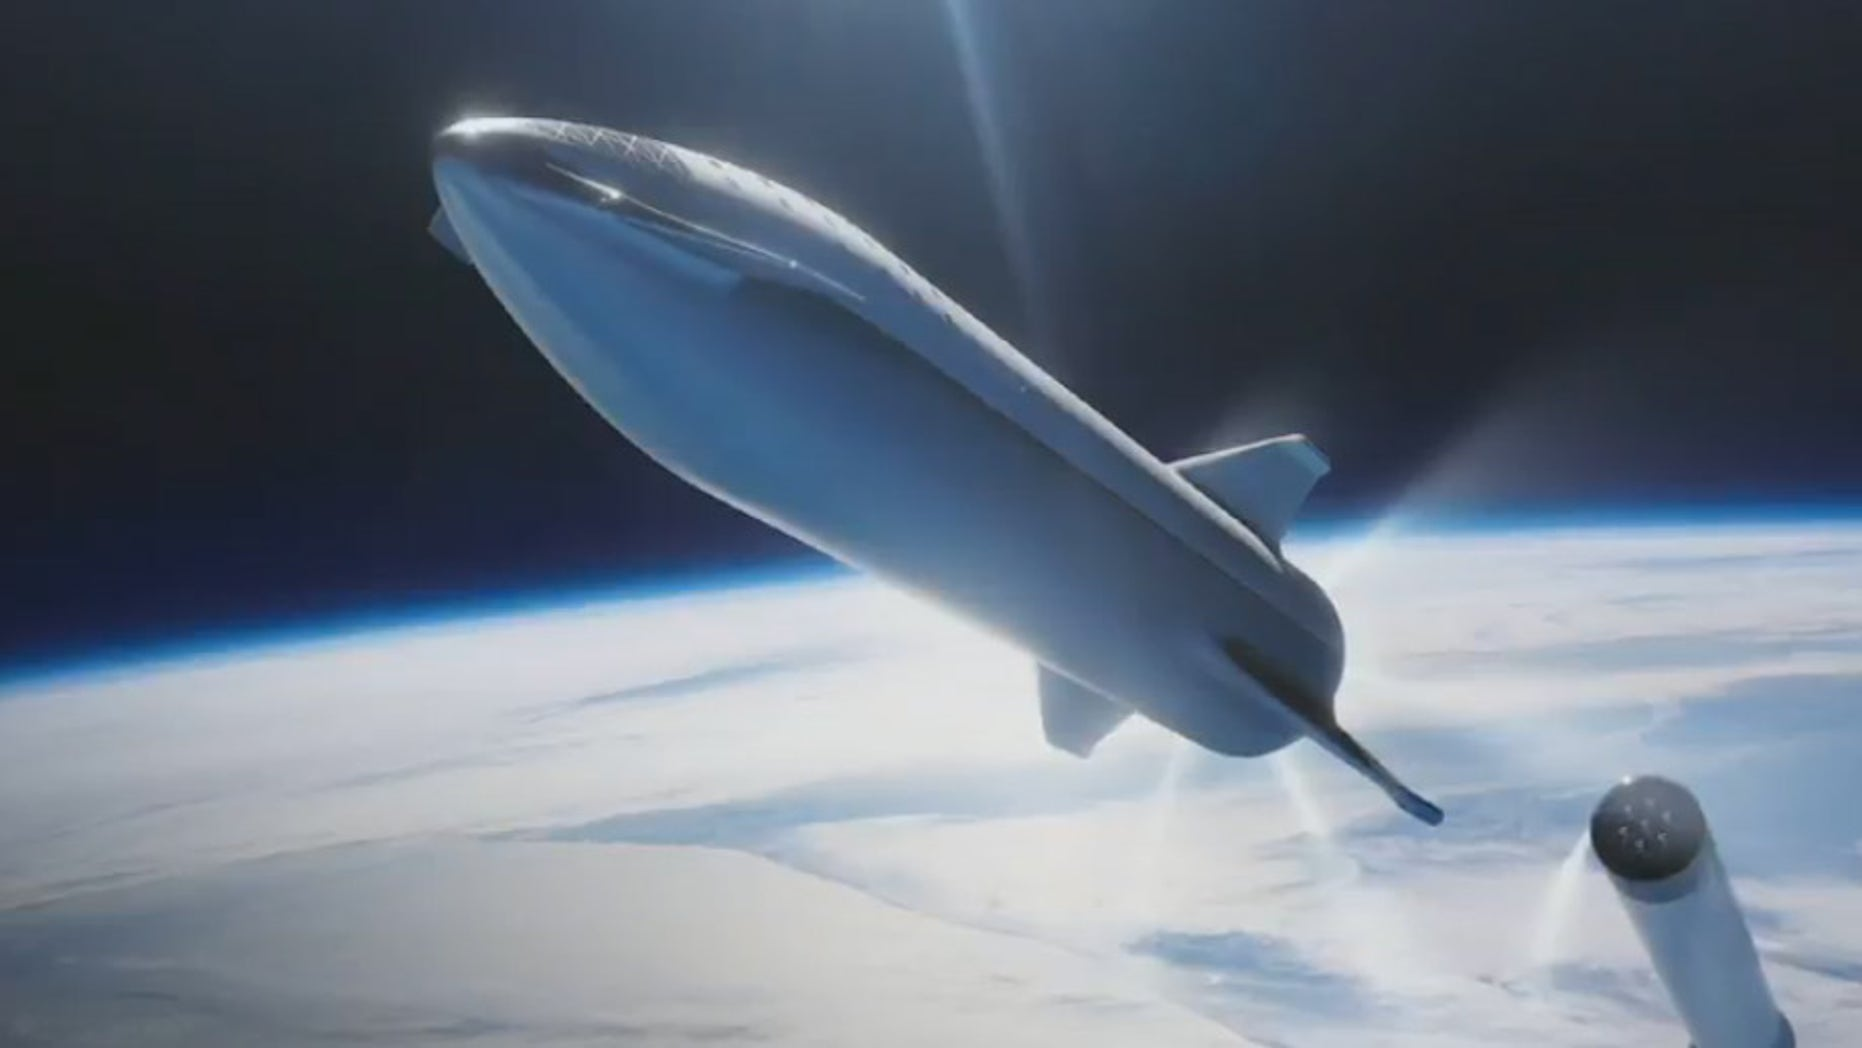 An artist's illustration of SpaceX's Starship spacecraft separating from its Super Heavy rocket. These vehicles were previously known as the BFS (Big Falcon Spaceship) and BFR (Big Falcon Rocket), respectively.